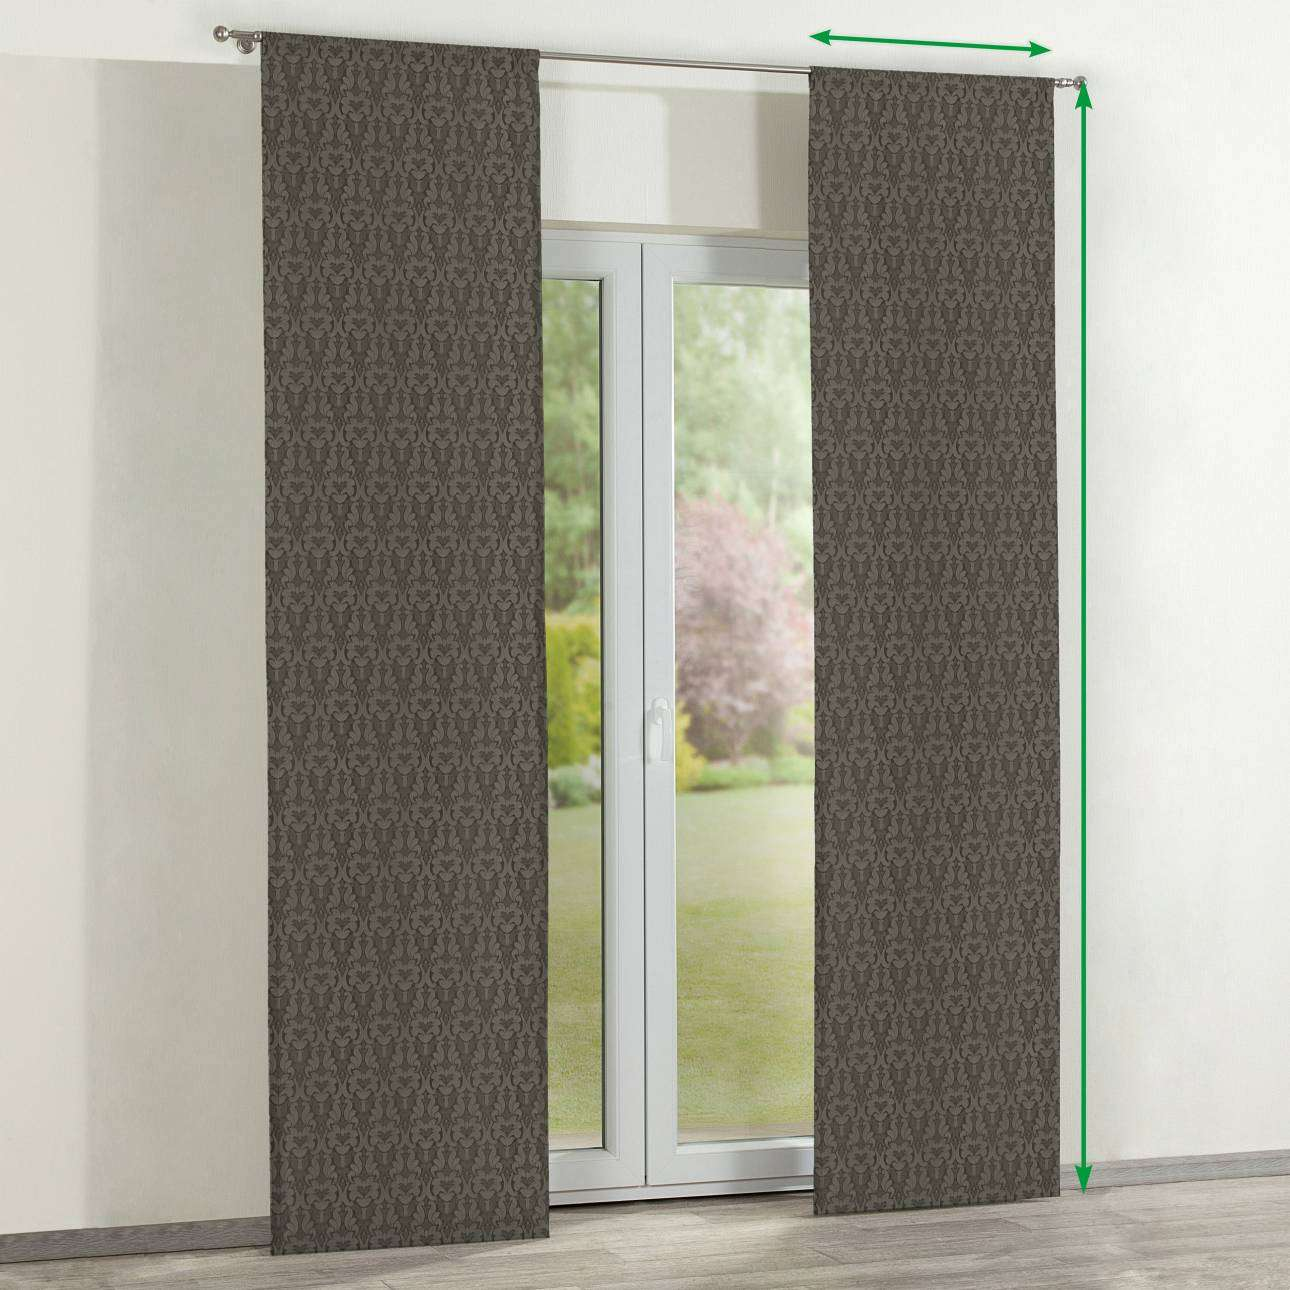 Slot panel curtains – Set of 2 in collection Victoria, fabric: 130-09